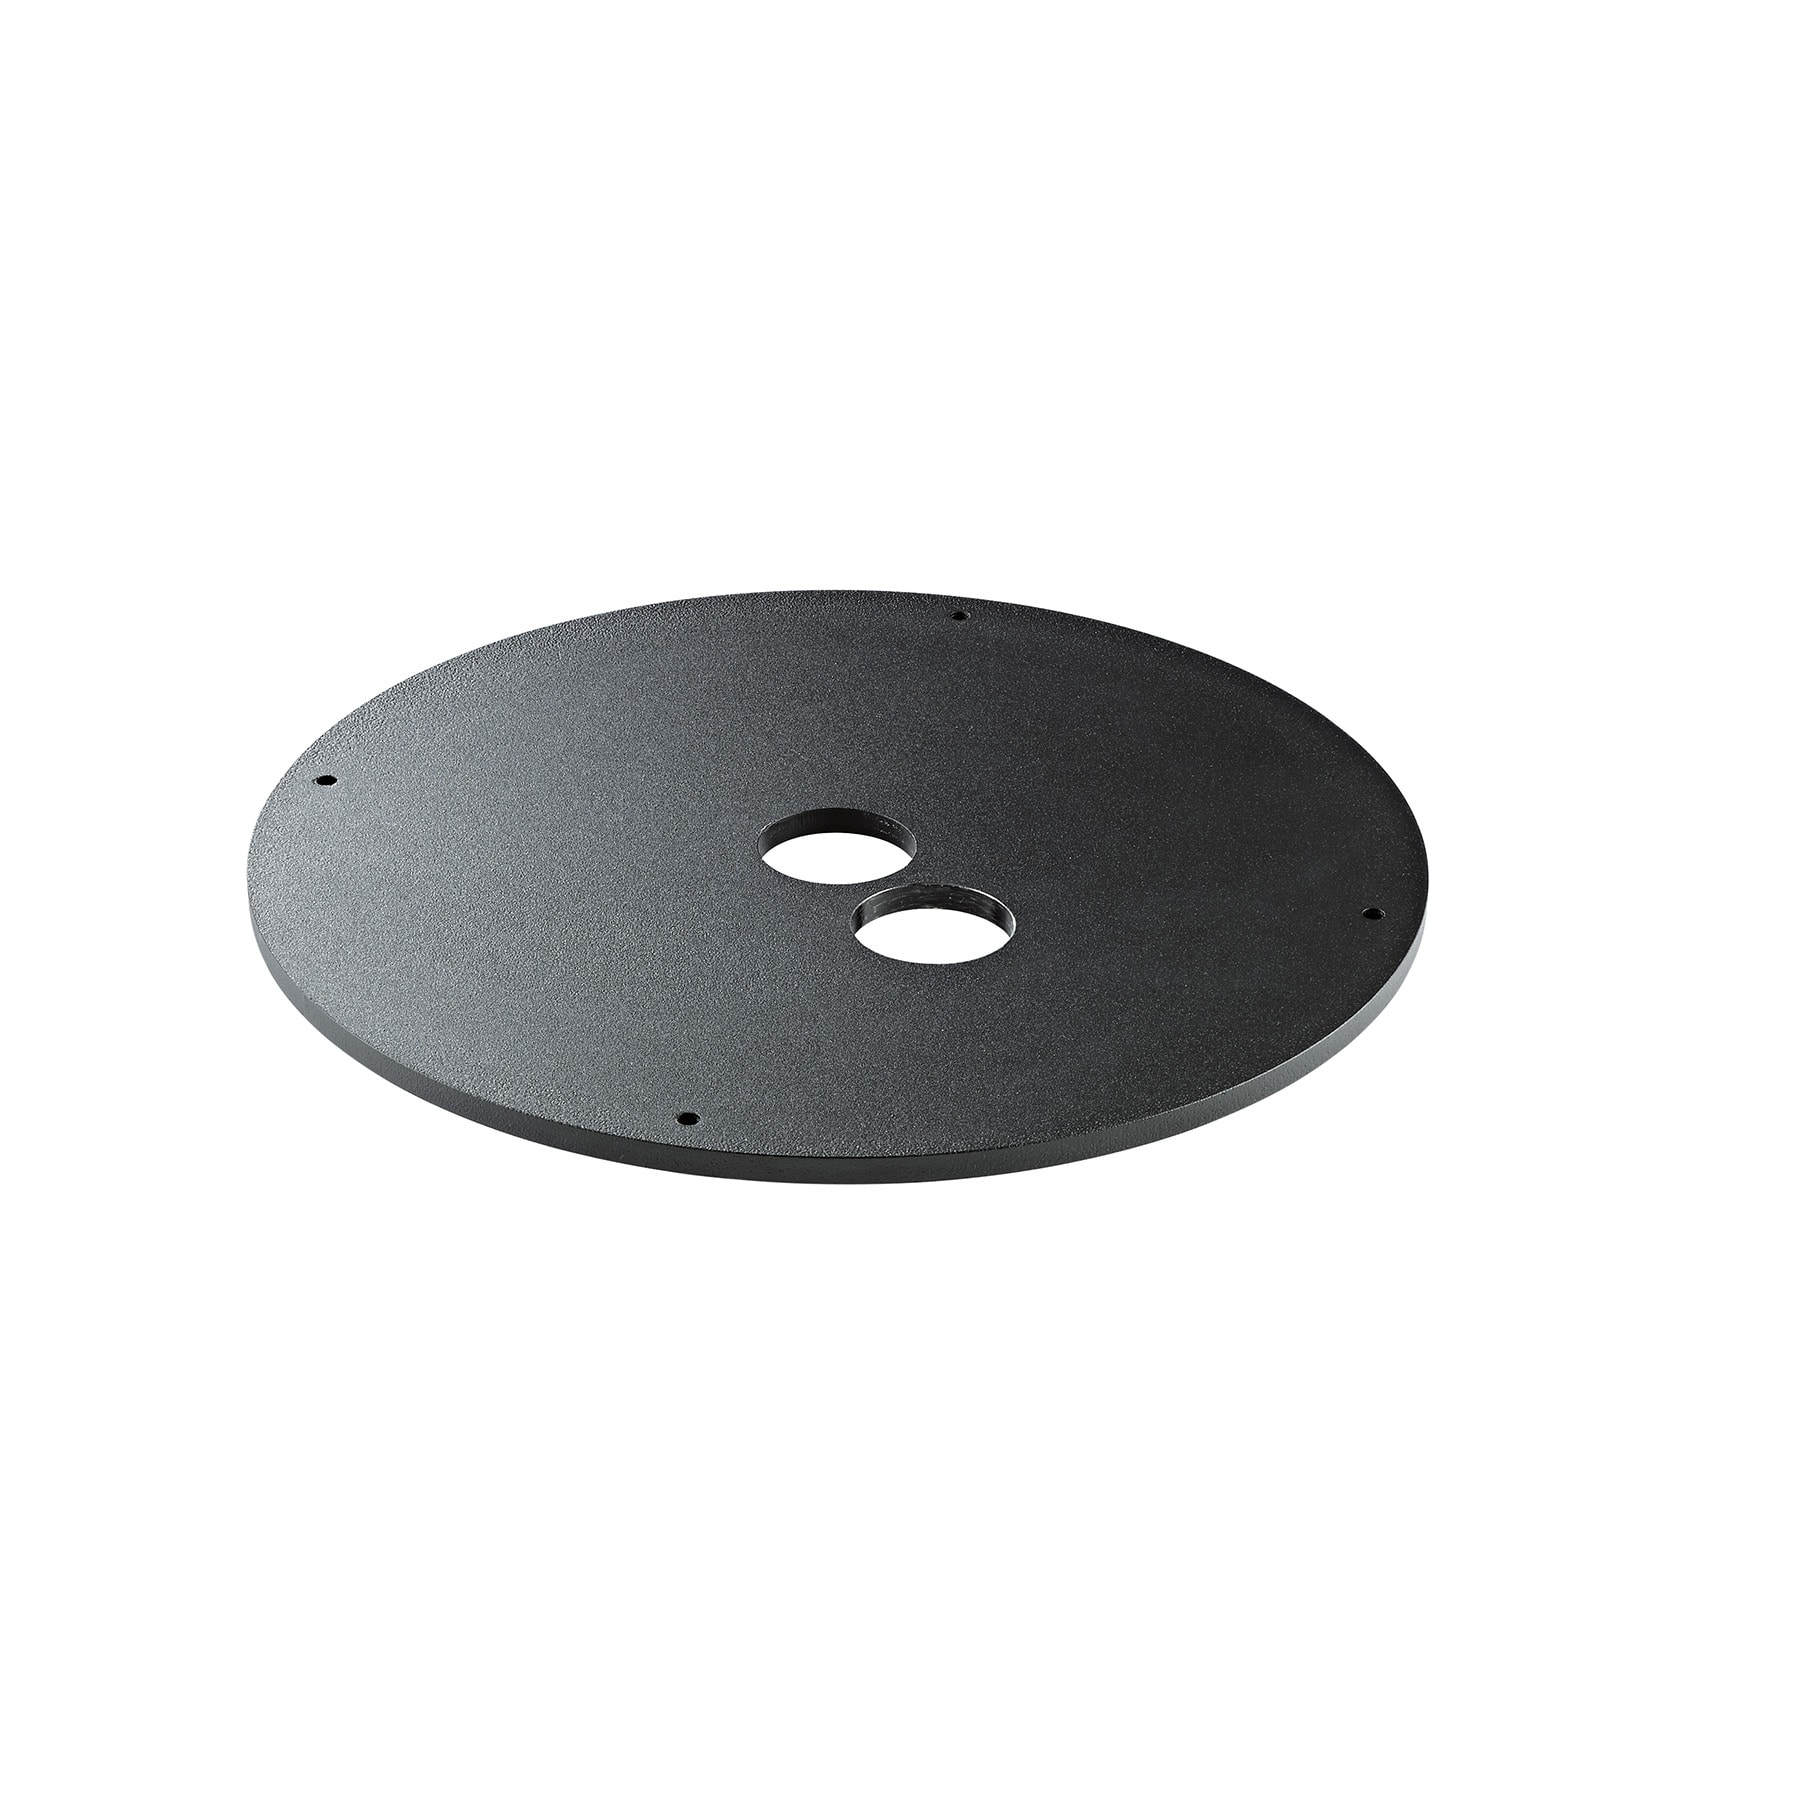 KM26709 - Additional weight for base plates